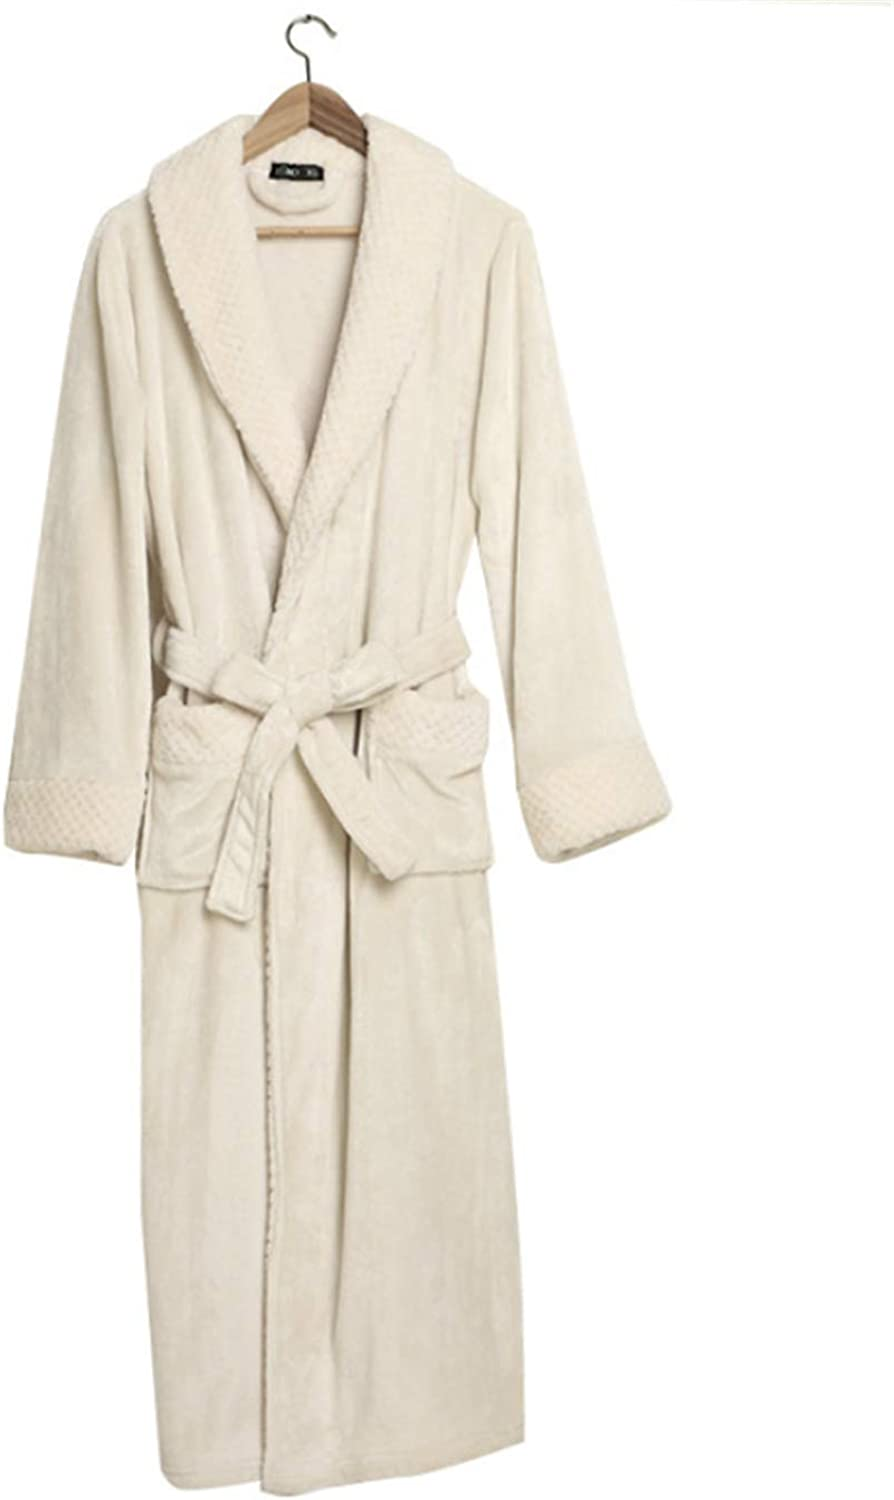 Couple Flannel Solid color Robe, Shawl Collar UltraSoft Spa Long Bathrobe  Absorbent, Durable and Comfortable  White,XXXL